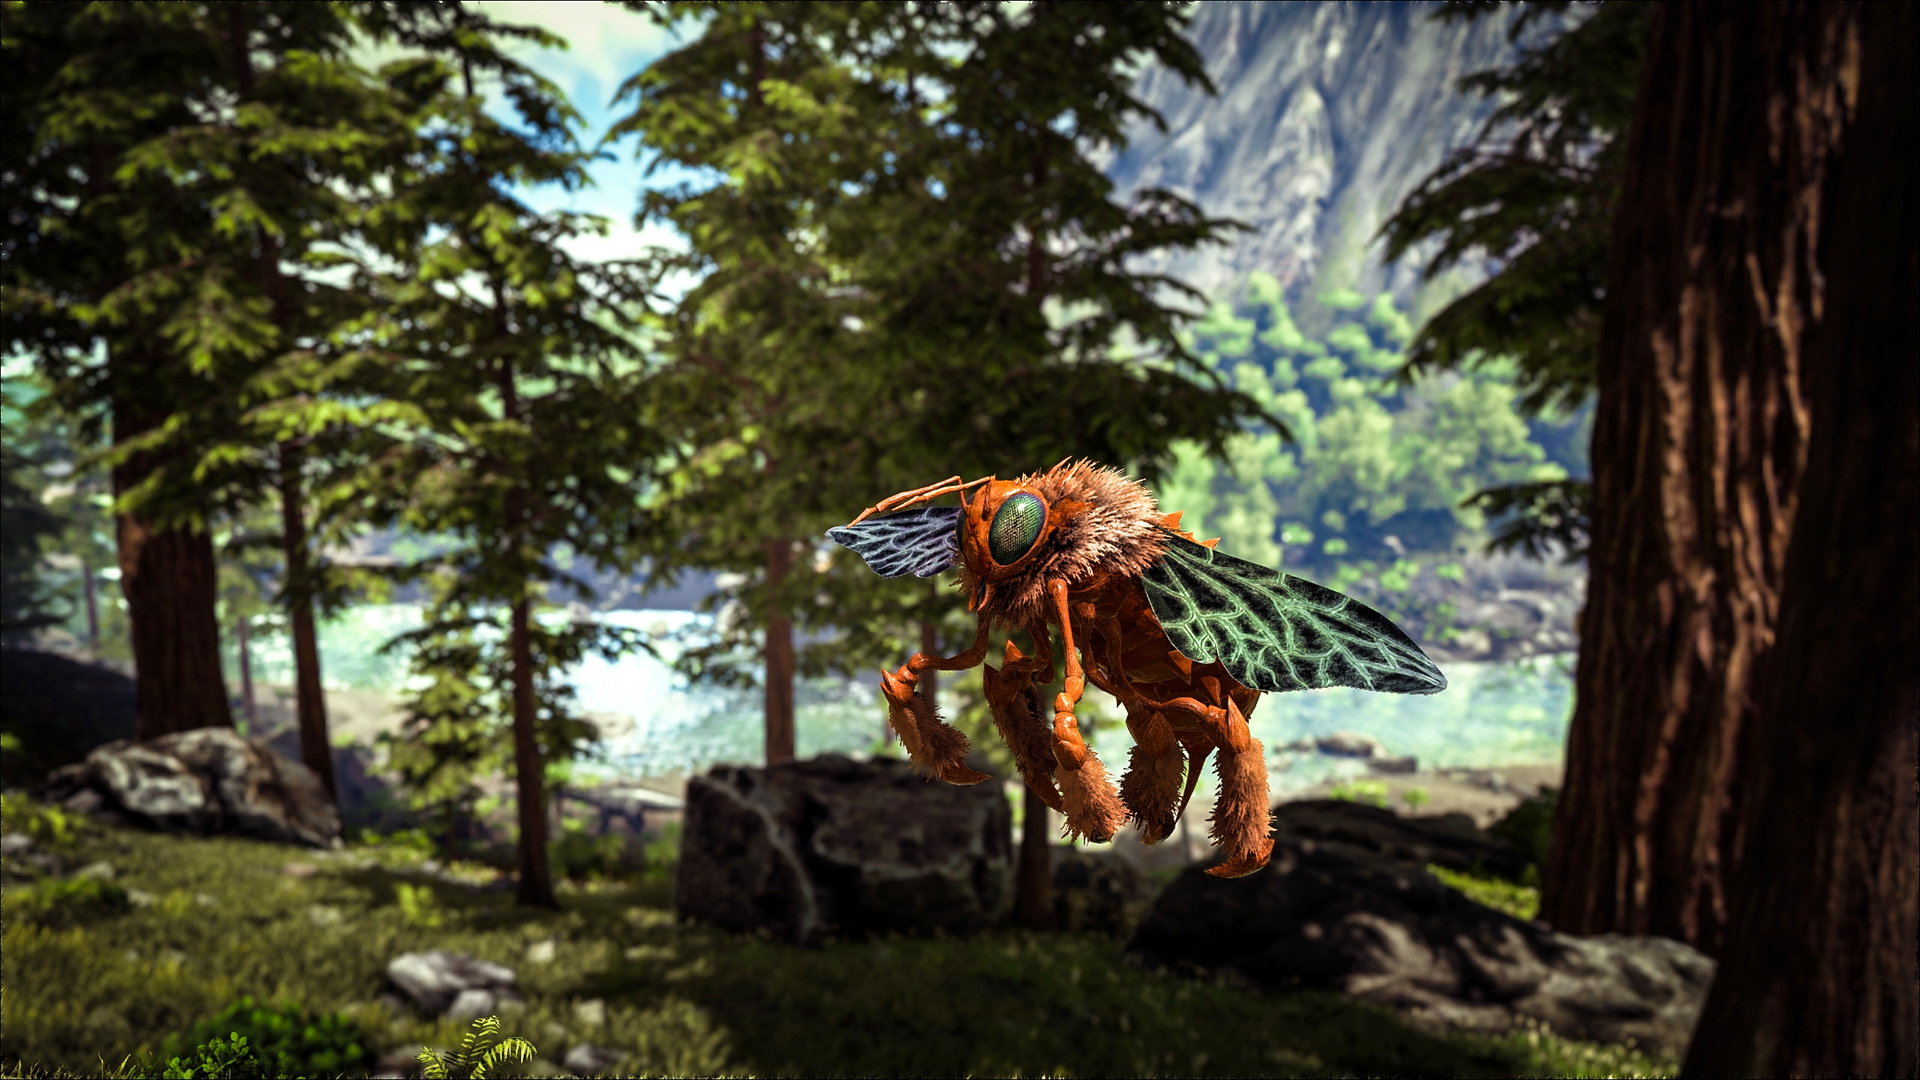 Ark Survival Evolved Update Brings New Music Creatures And Gear To Xbox One And Ps4 Marooners Rock If you get 3 daeodons near eachother, the healing rate gets increased for each individual daeodon, but having more than one active at once does nothing. ark survival evolved update brings new